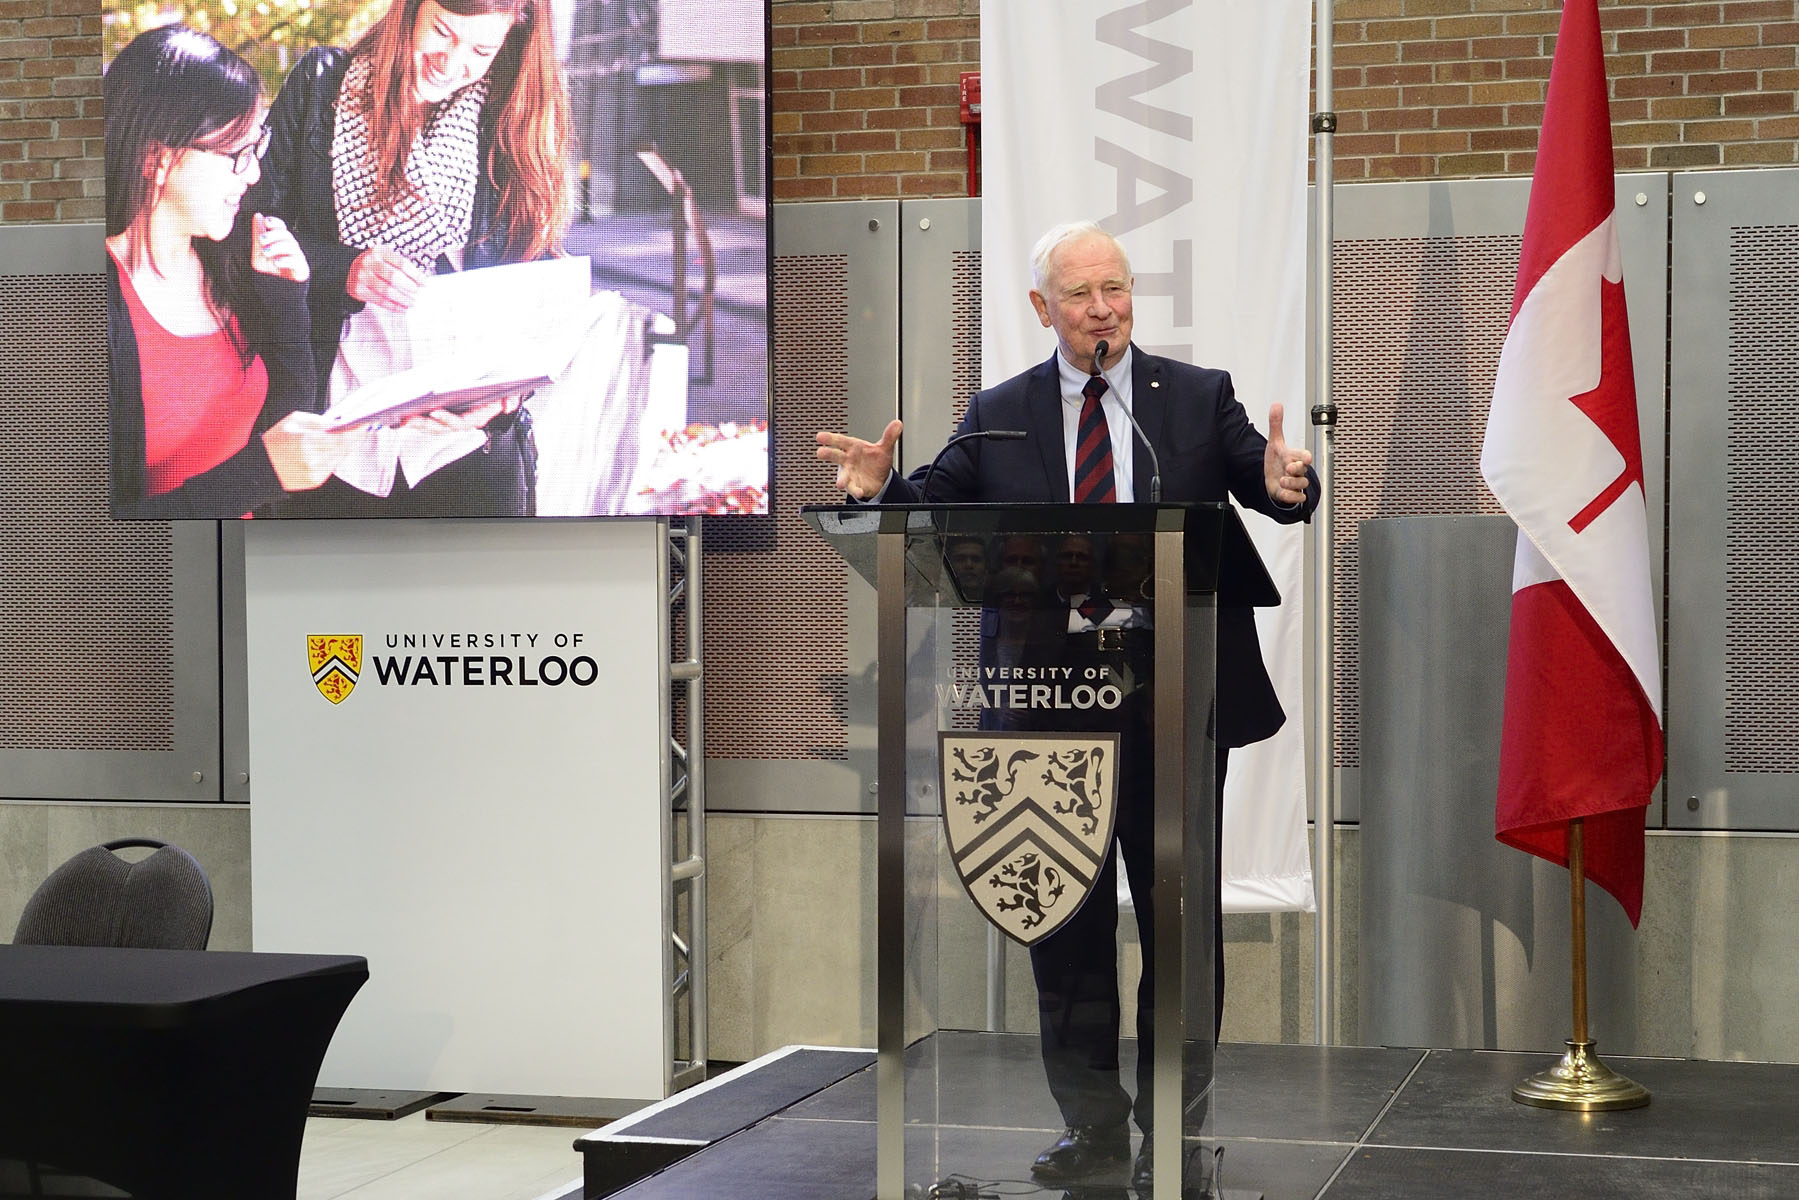 The Governor General presented his recently published book The Idea of Canada: Letters to a Nation at the University of Waterloo.